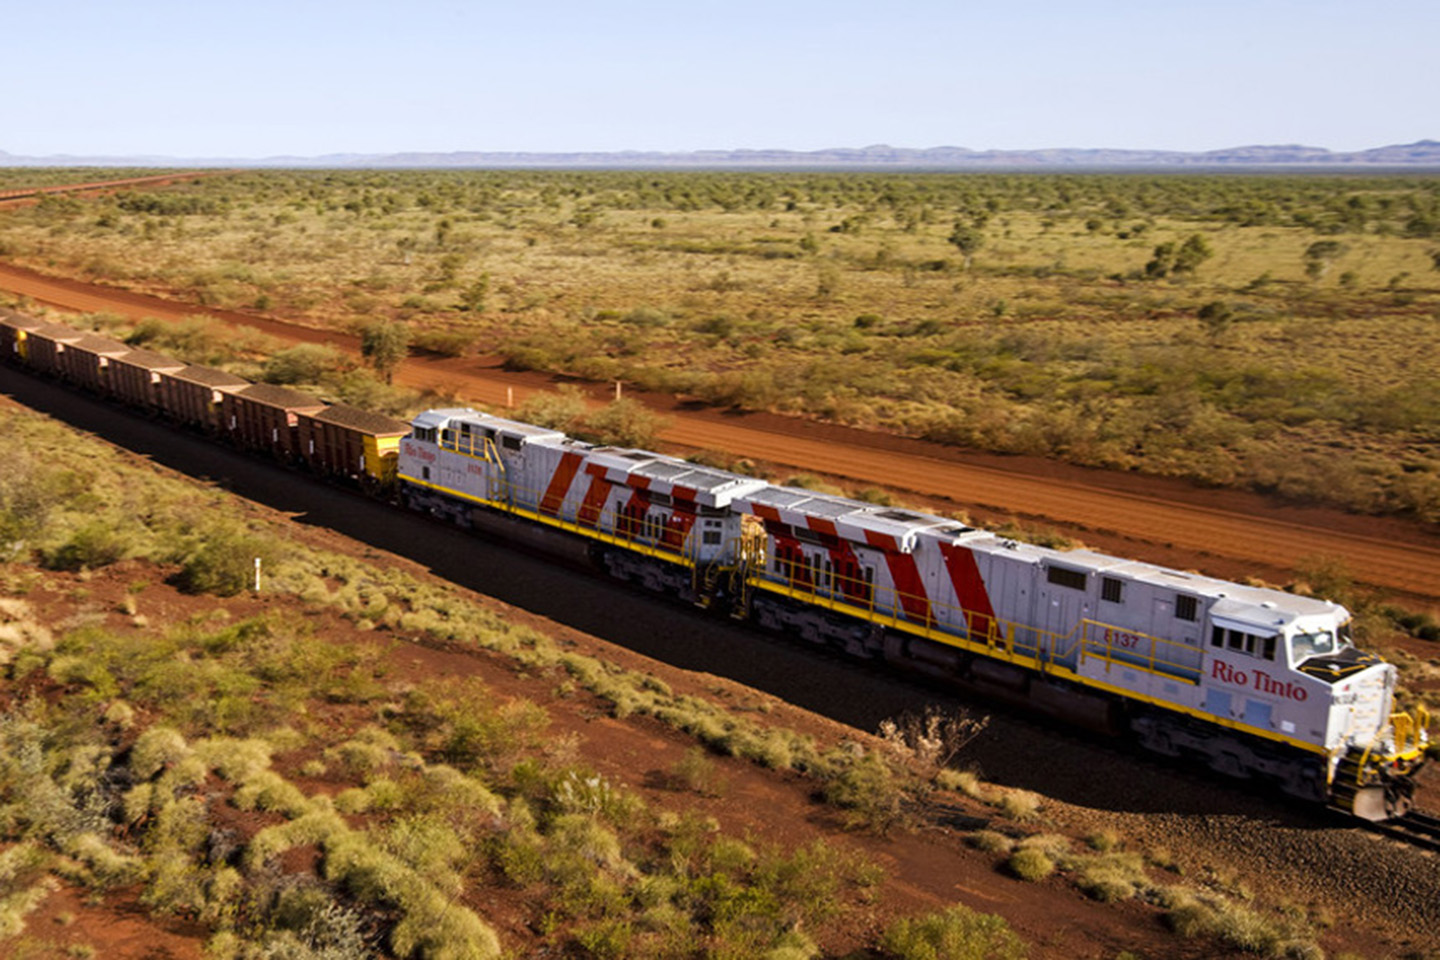 Rio operates about 200 locomotives on more than 1,700 kilometres of track in the Pilbara